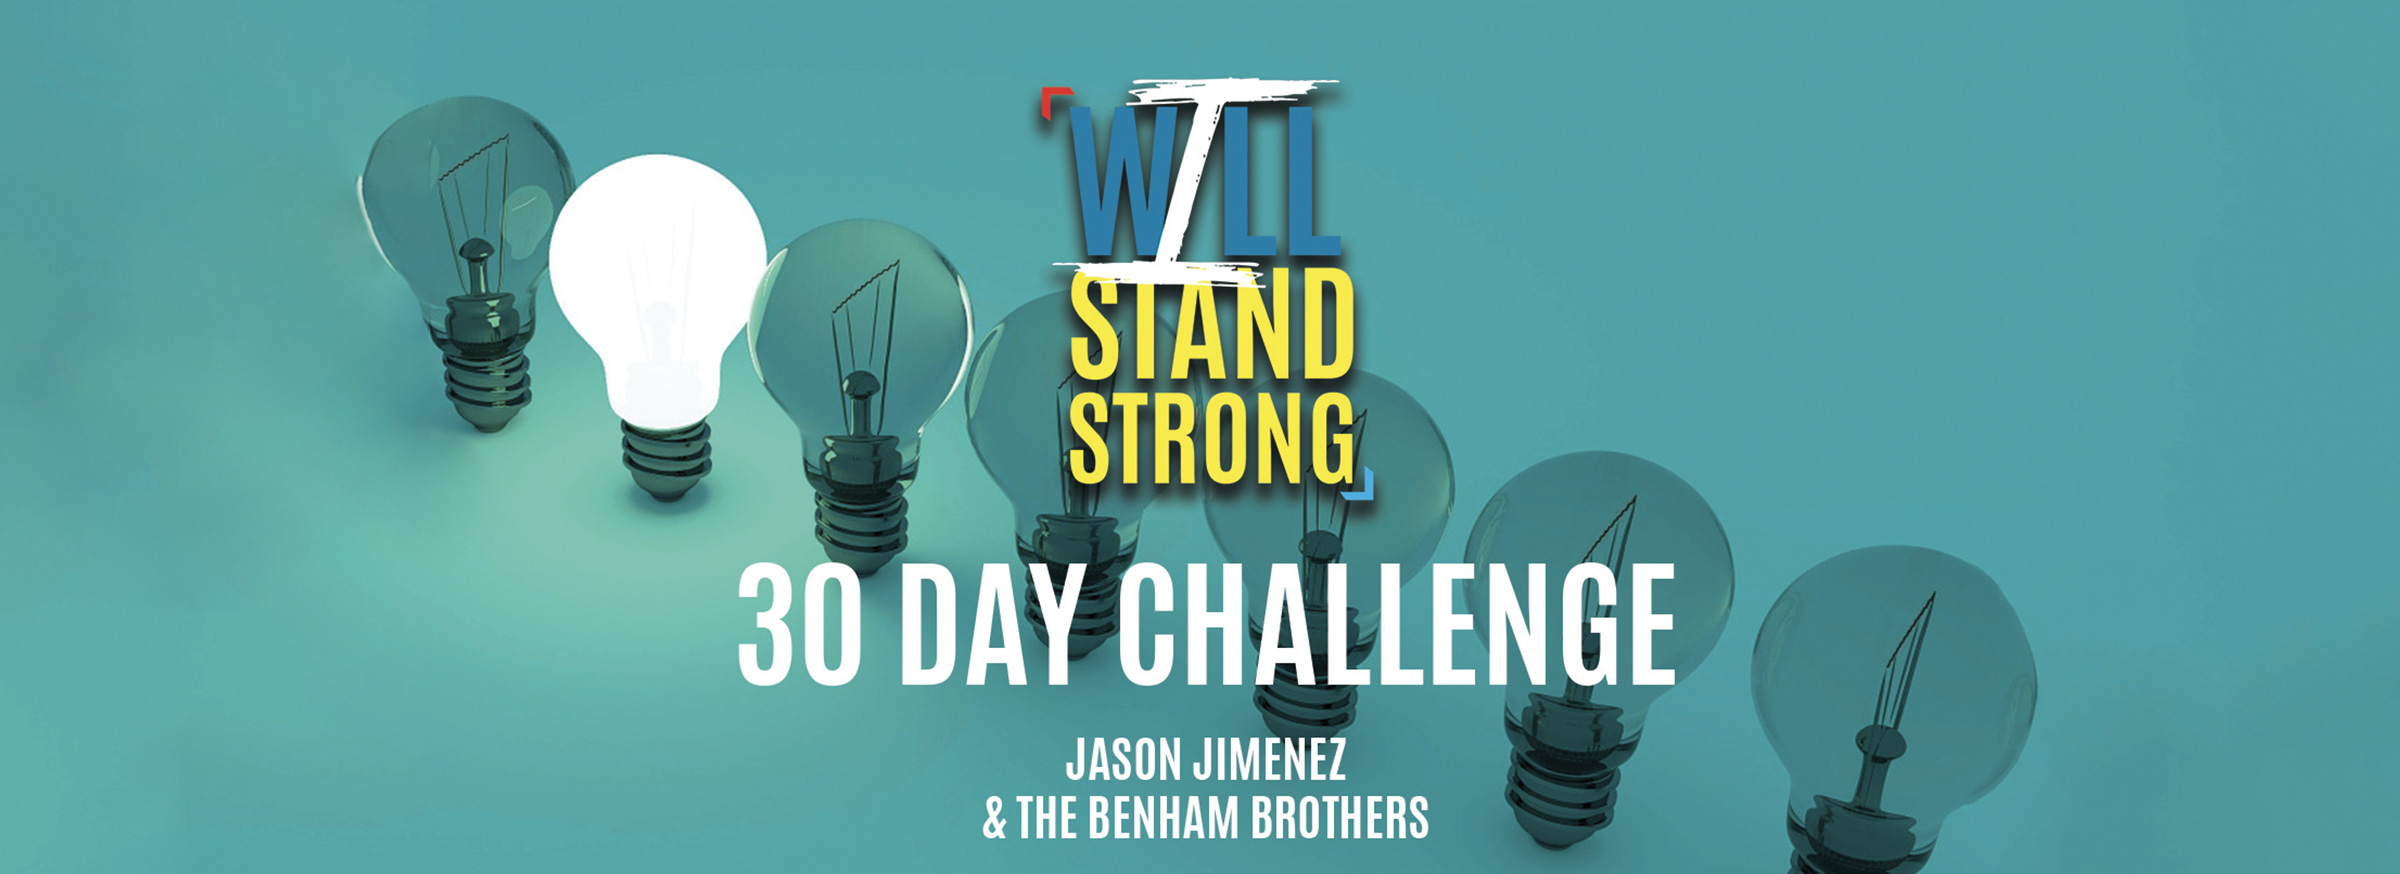 2019Slider-I-Will-Stand-Strong